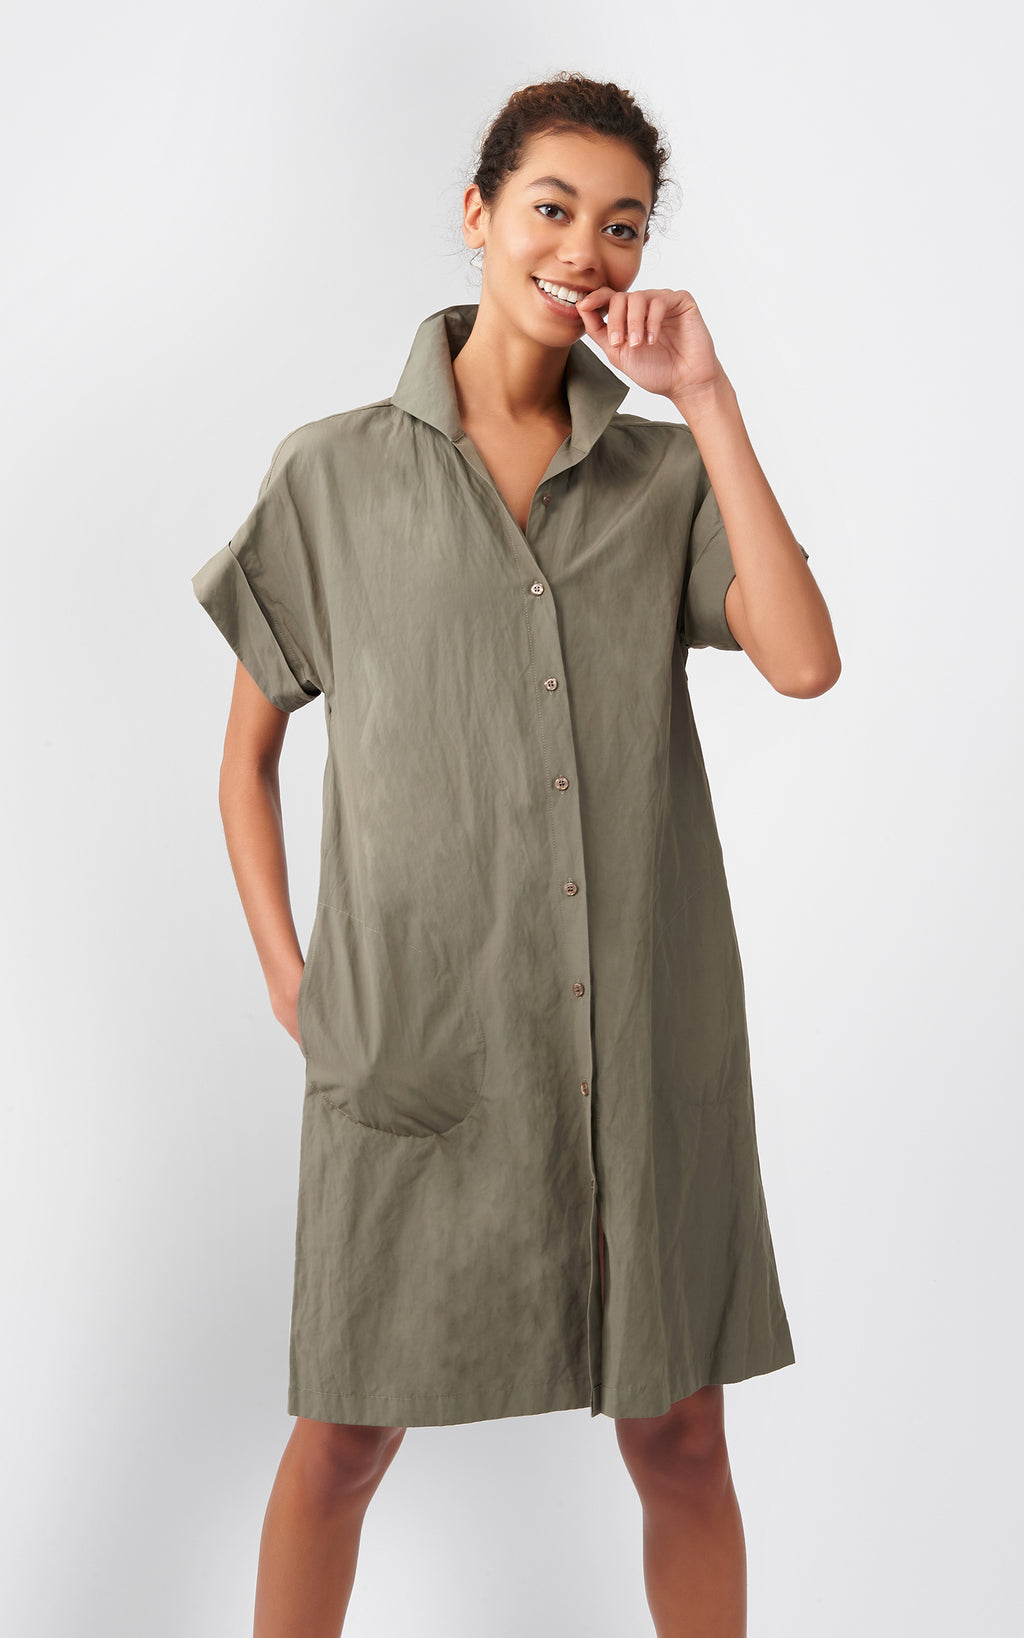 KIMONO DRESS - OLIVE COTTON/NYLON